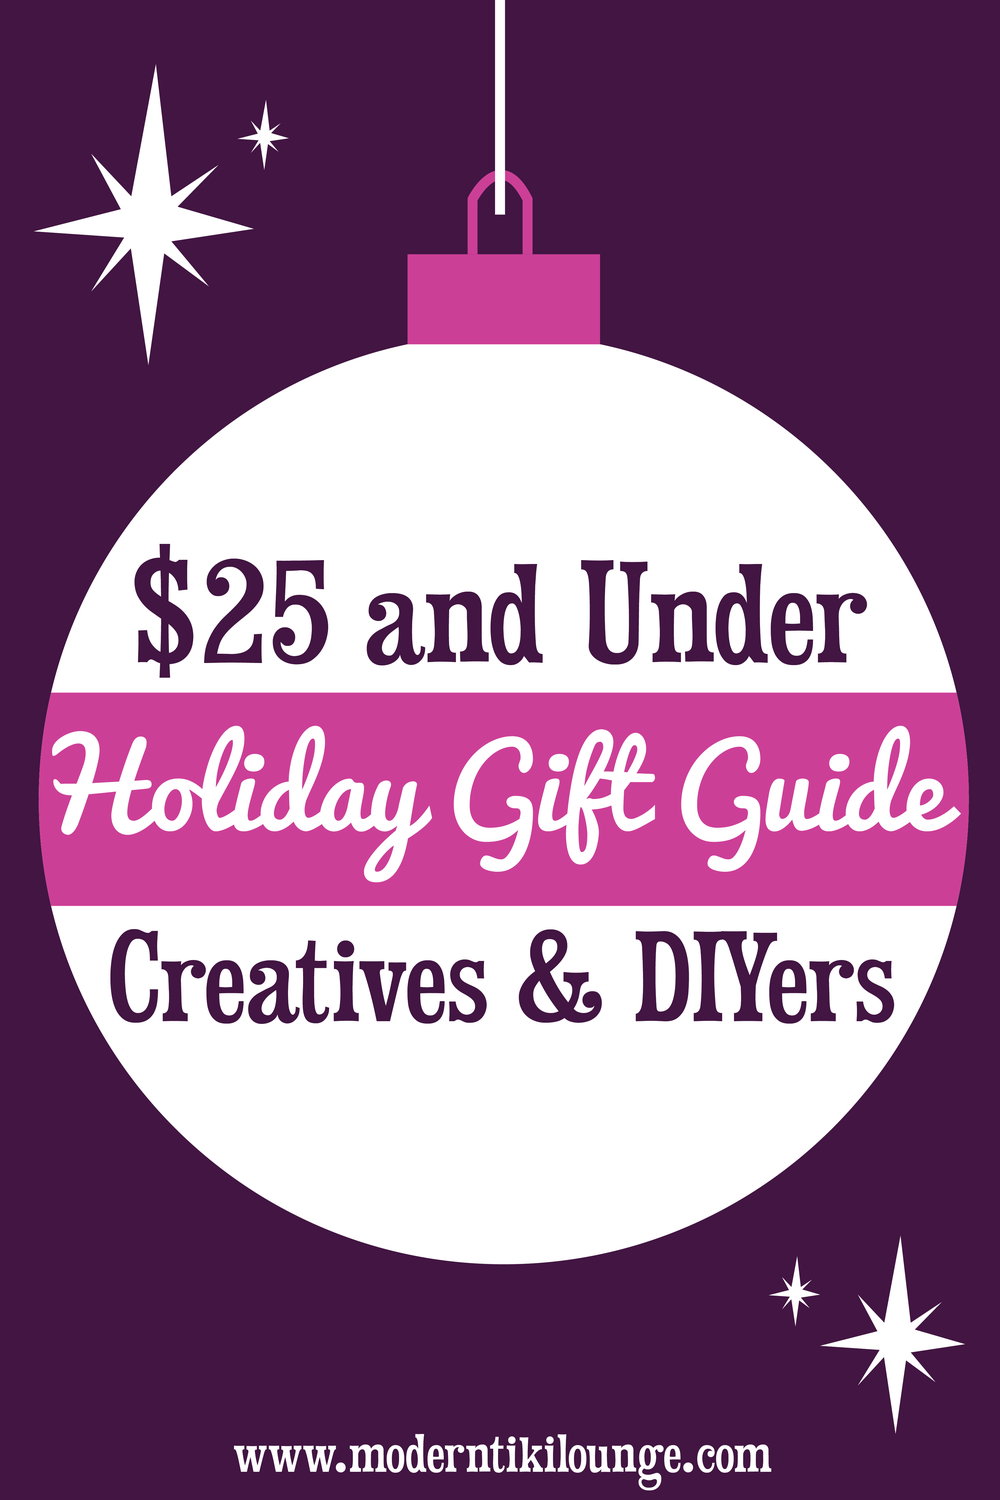 holiday-gift-guide-creatives-diyers.jpg